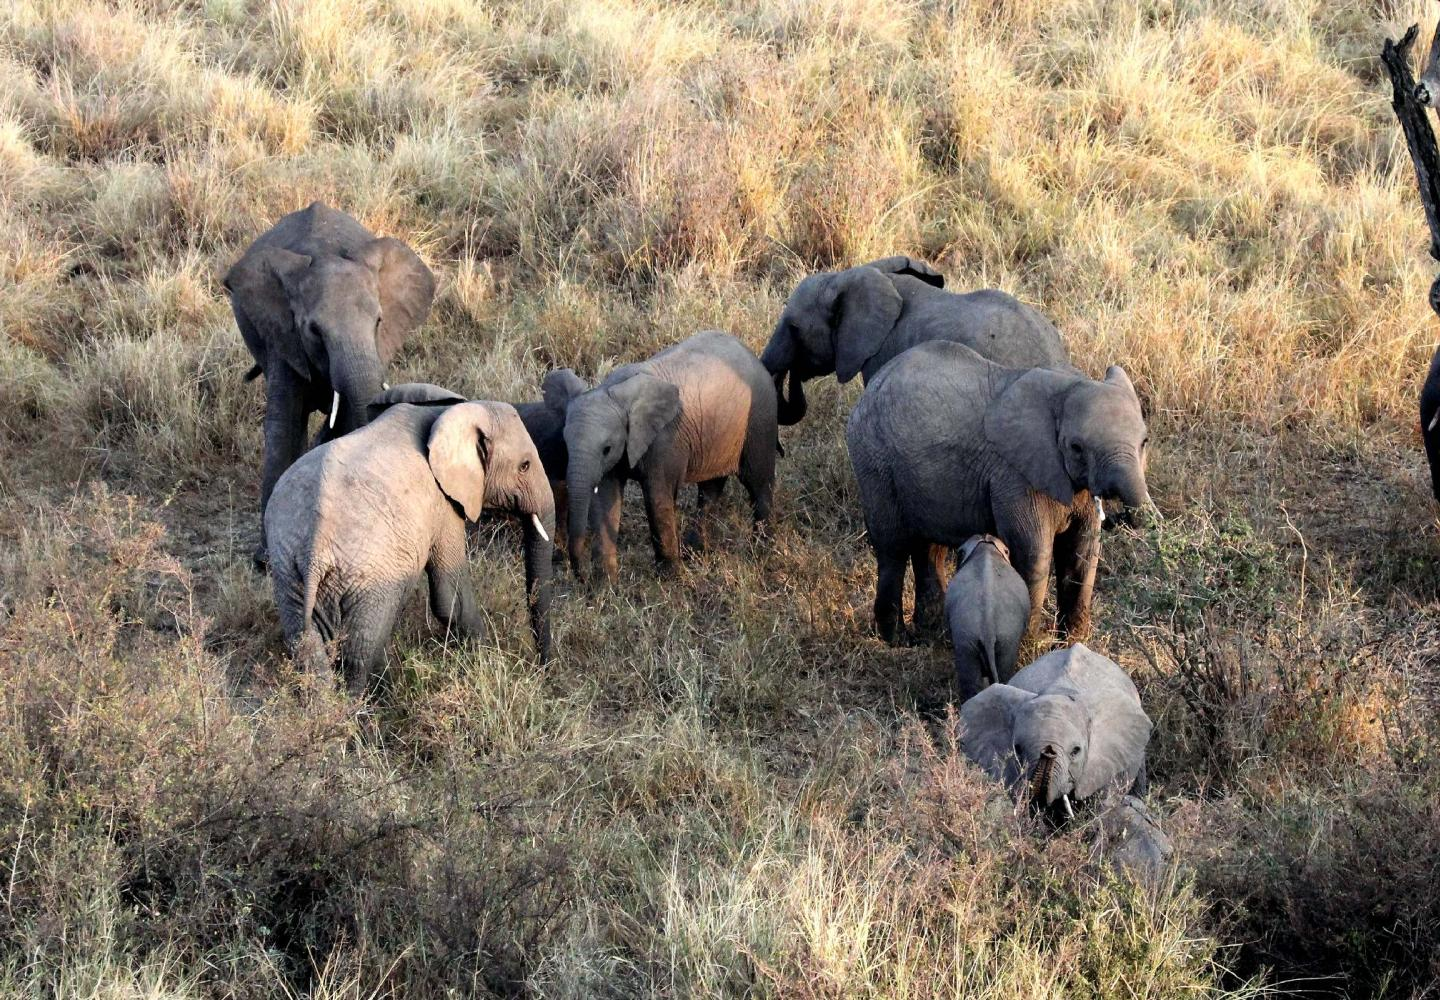 Five Elephants sighted from Hot Air Balloon (Murchsion Falls Uganda)